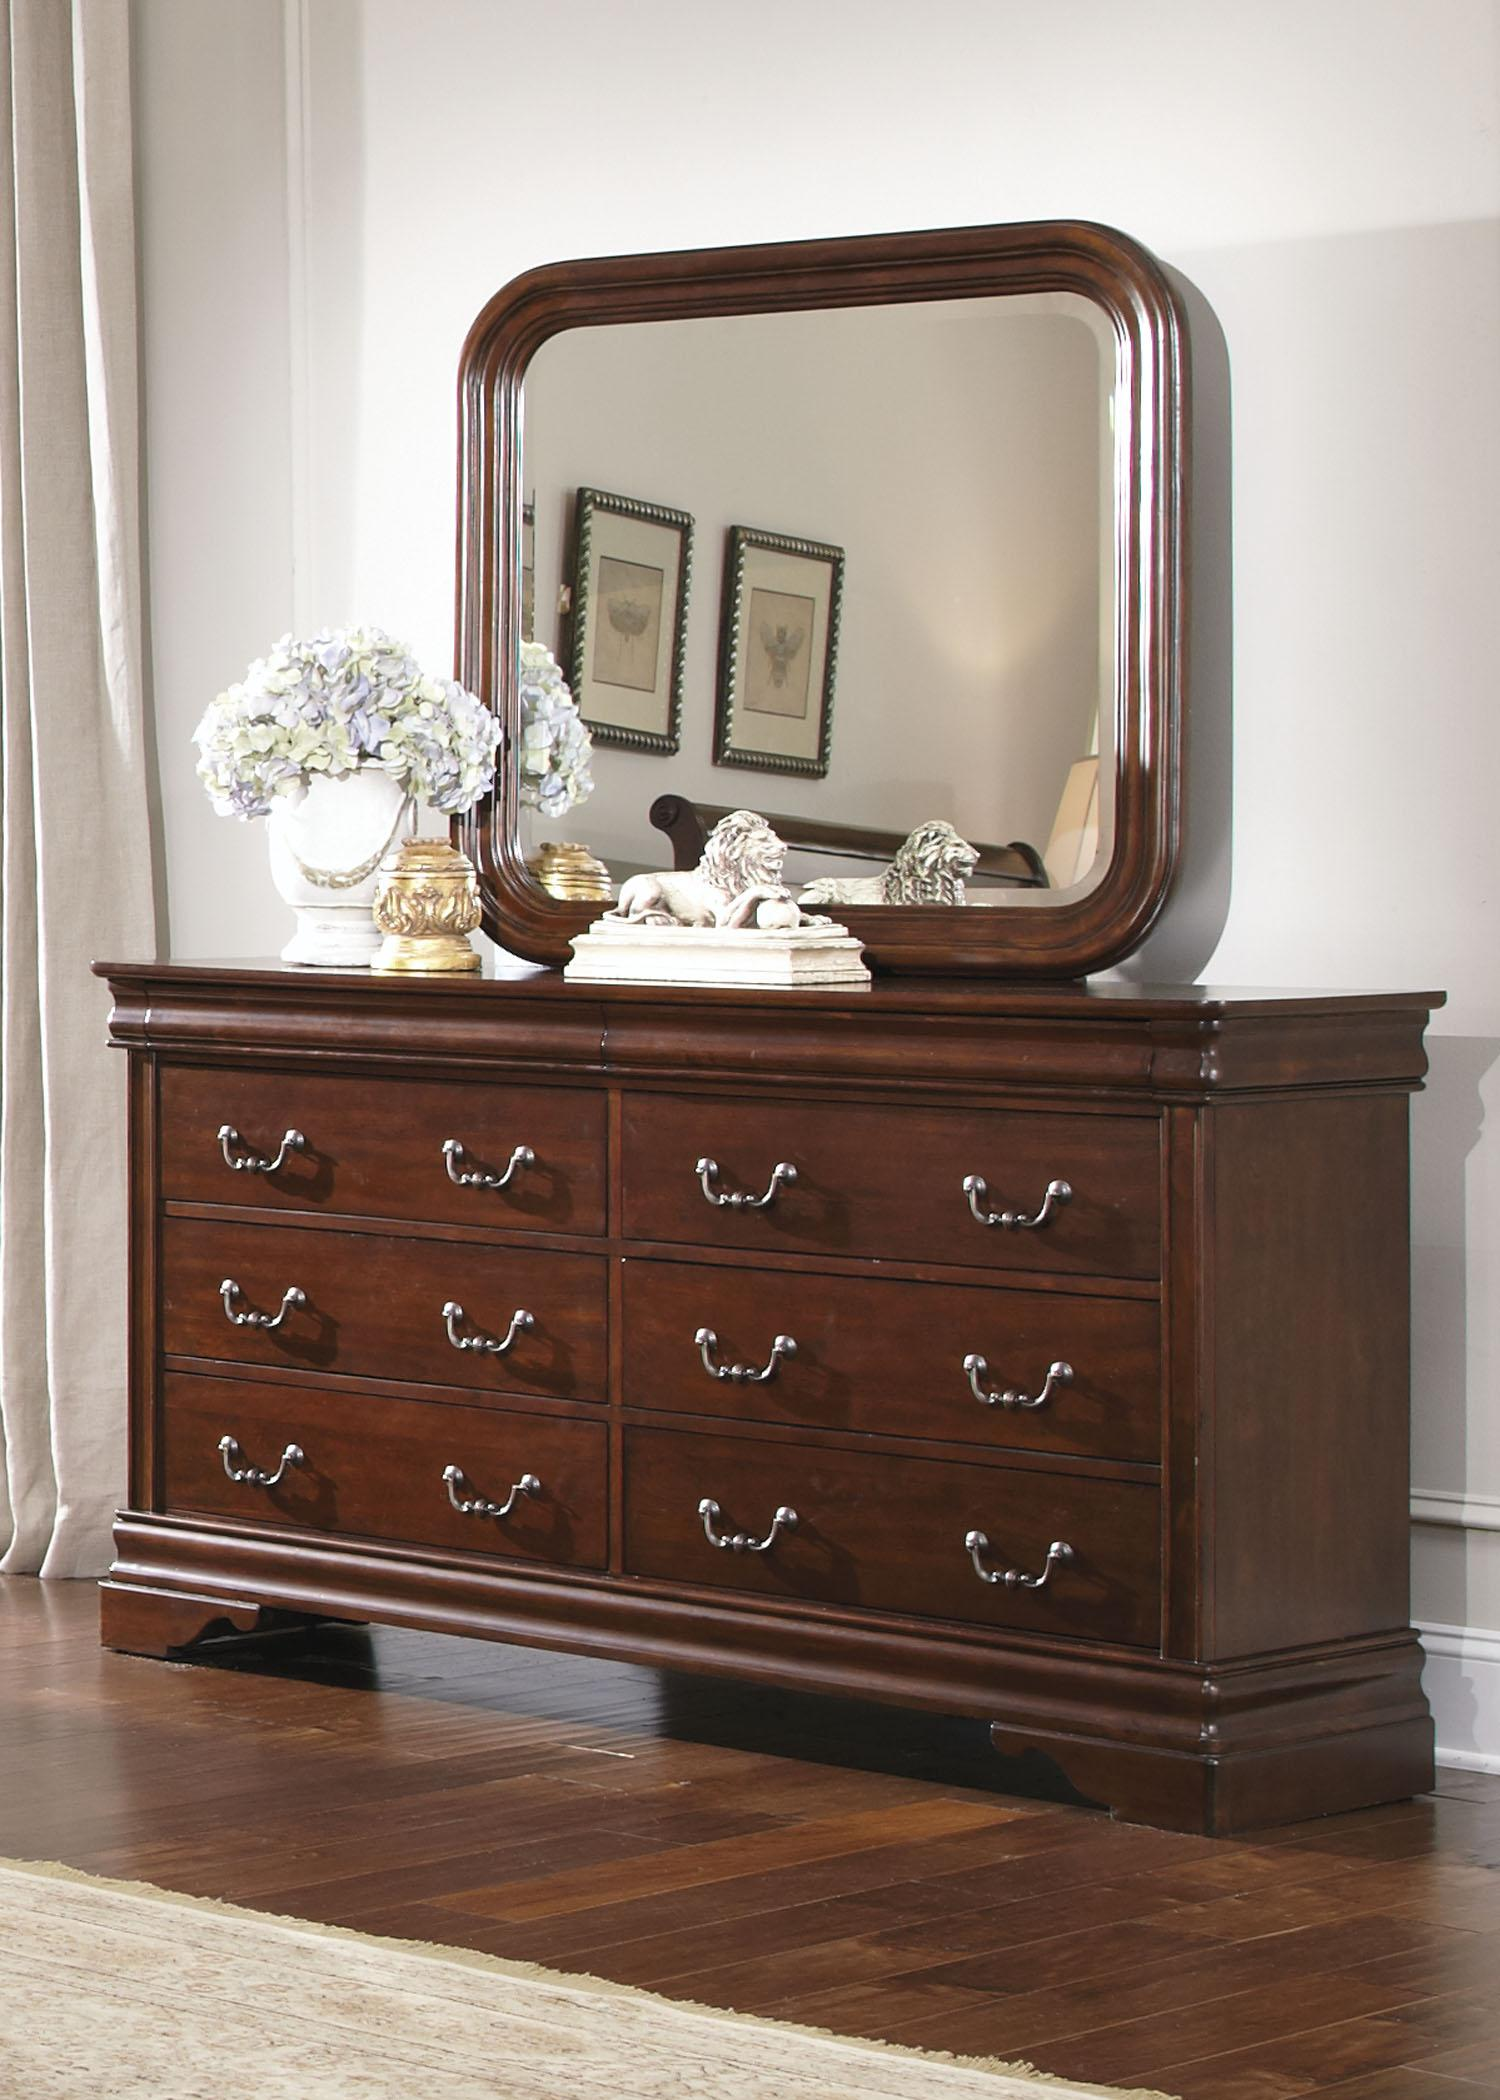 Queen Sleigh Bed Dresser Mirror Chest N S by Liberty Furniture